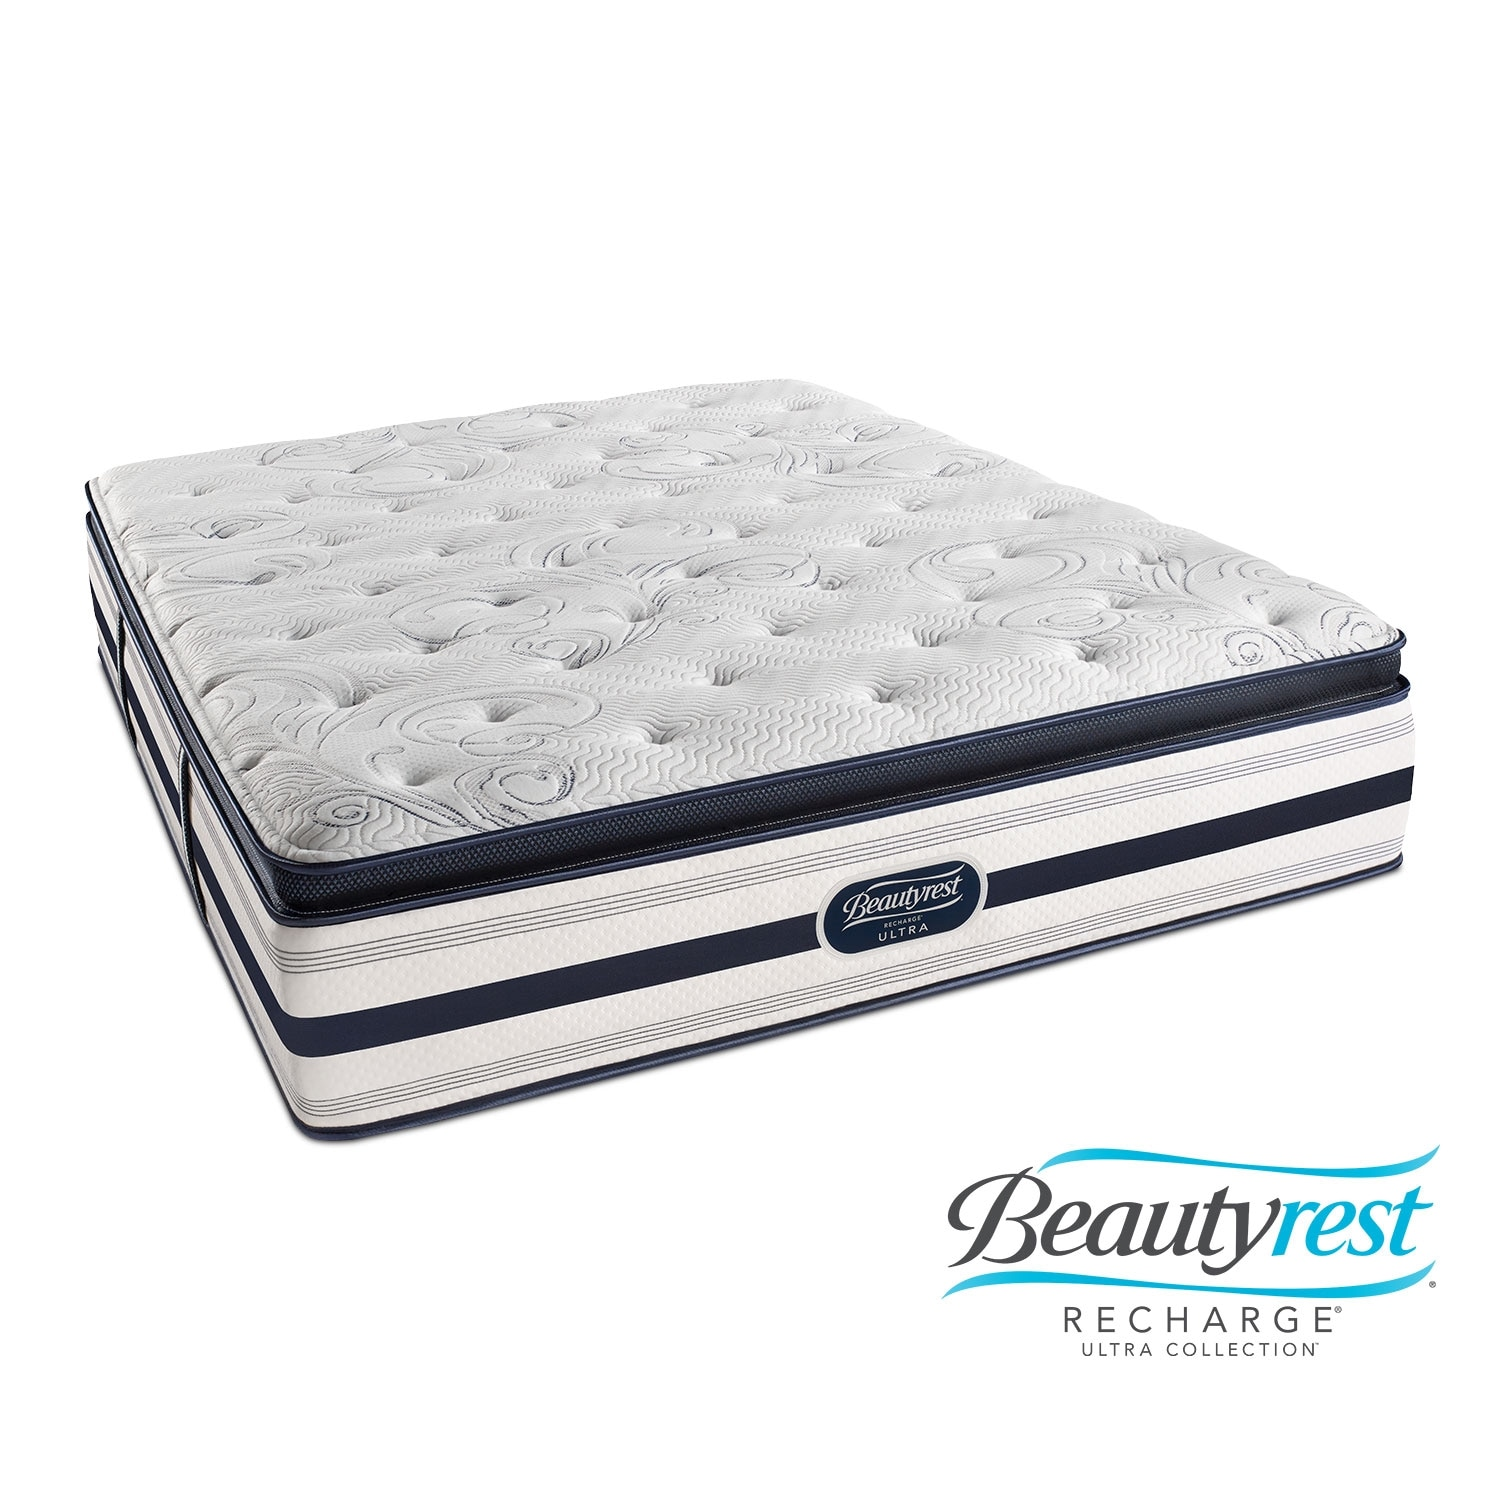 Mattresses and Bedding - Cerise Luxury Firm PT Twin Mattress